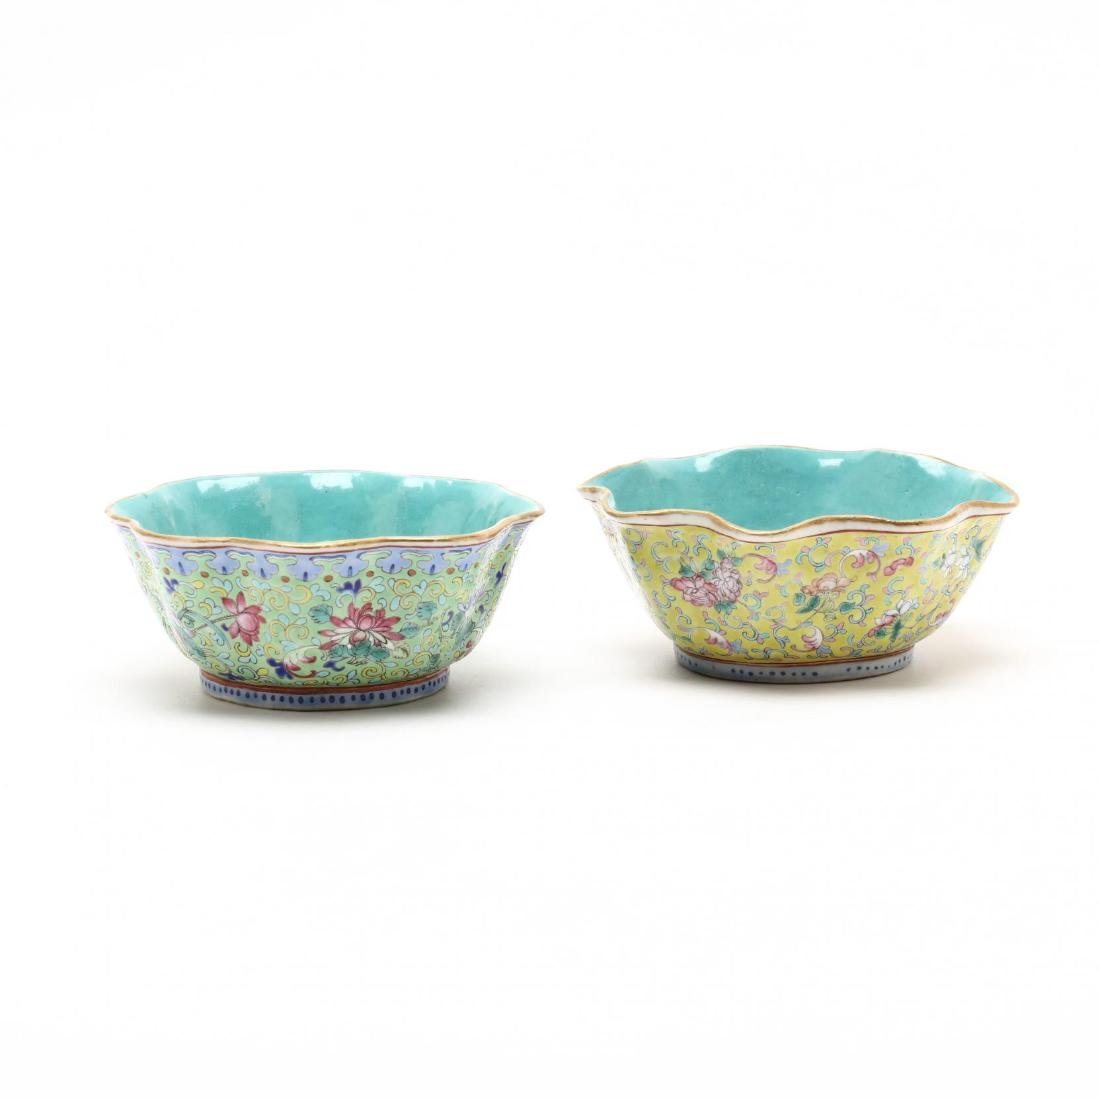 A Matched Pair of Chinese Porcelain Scalloped Bowls - 2